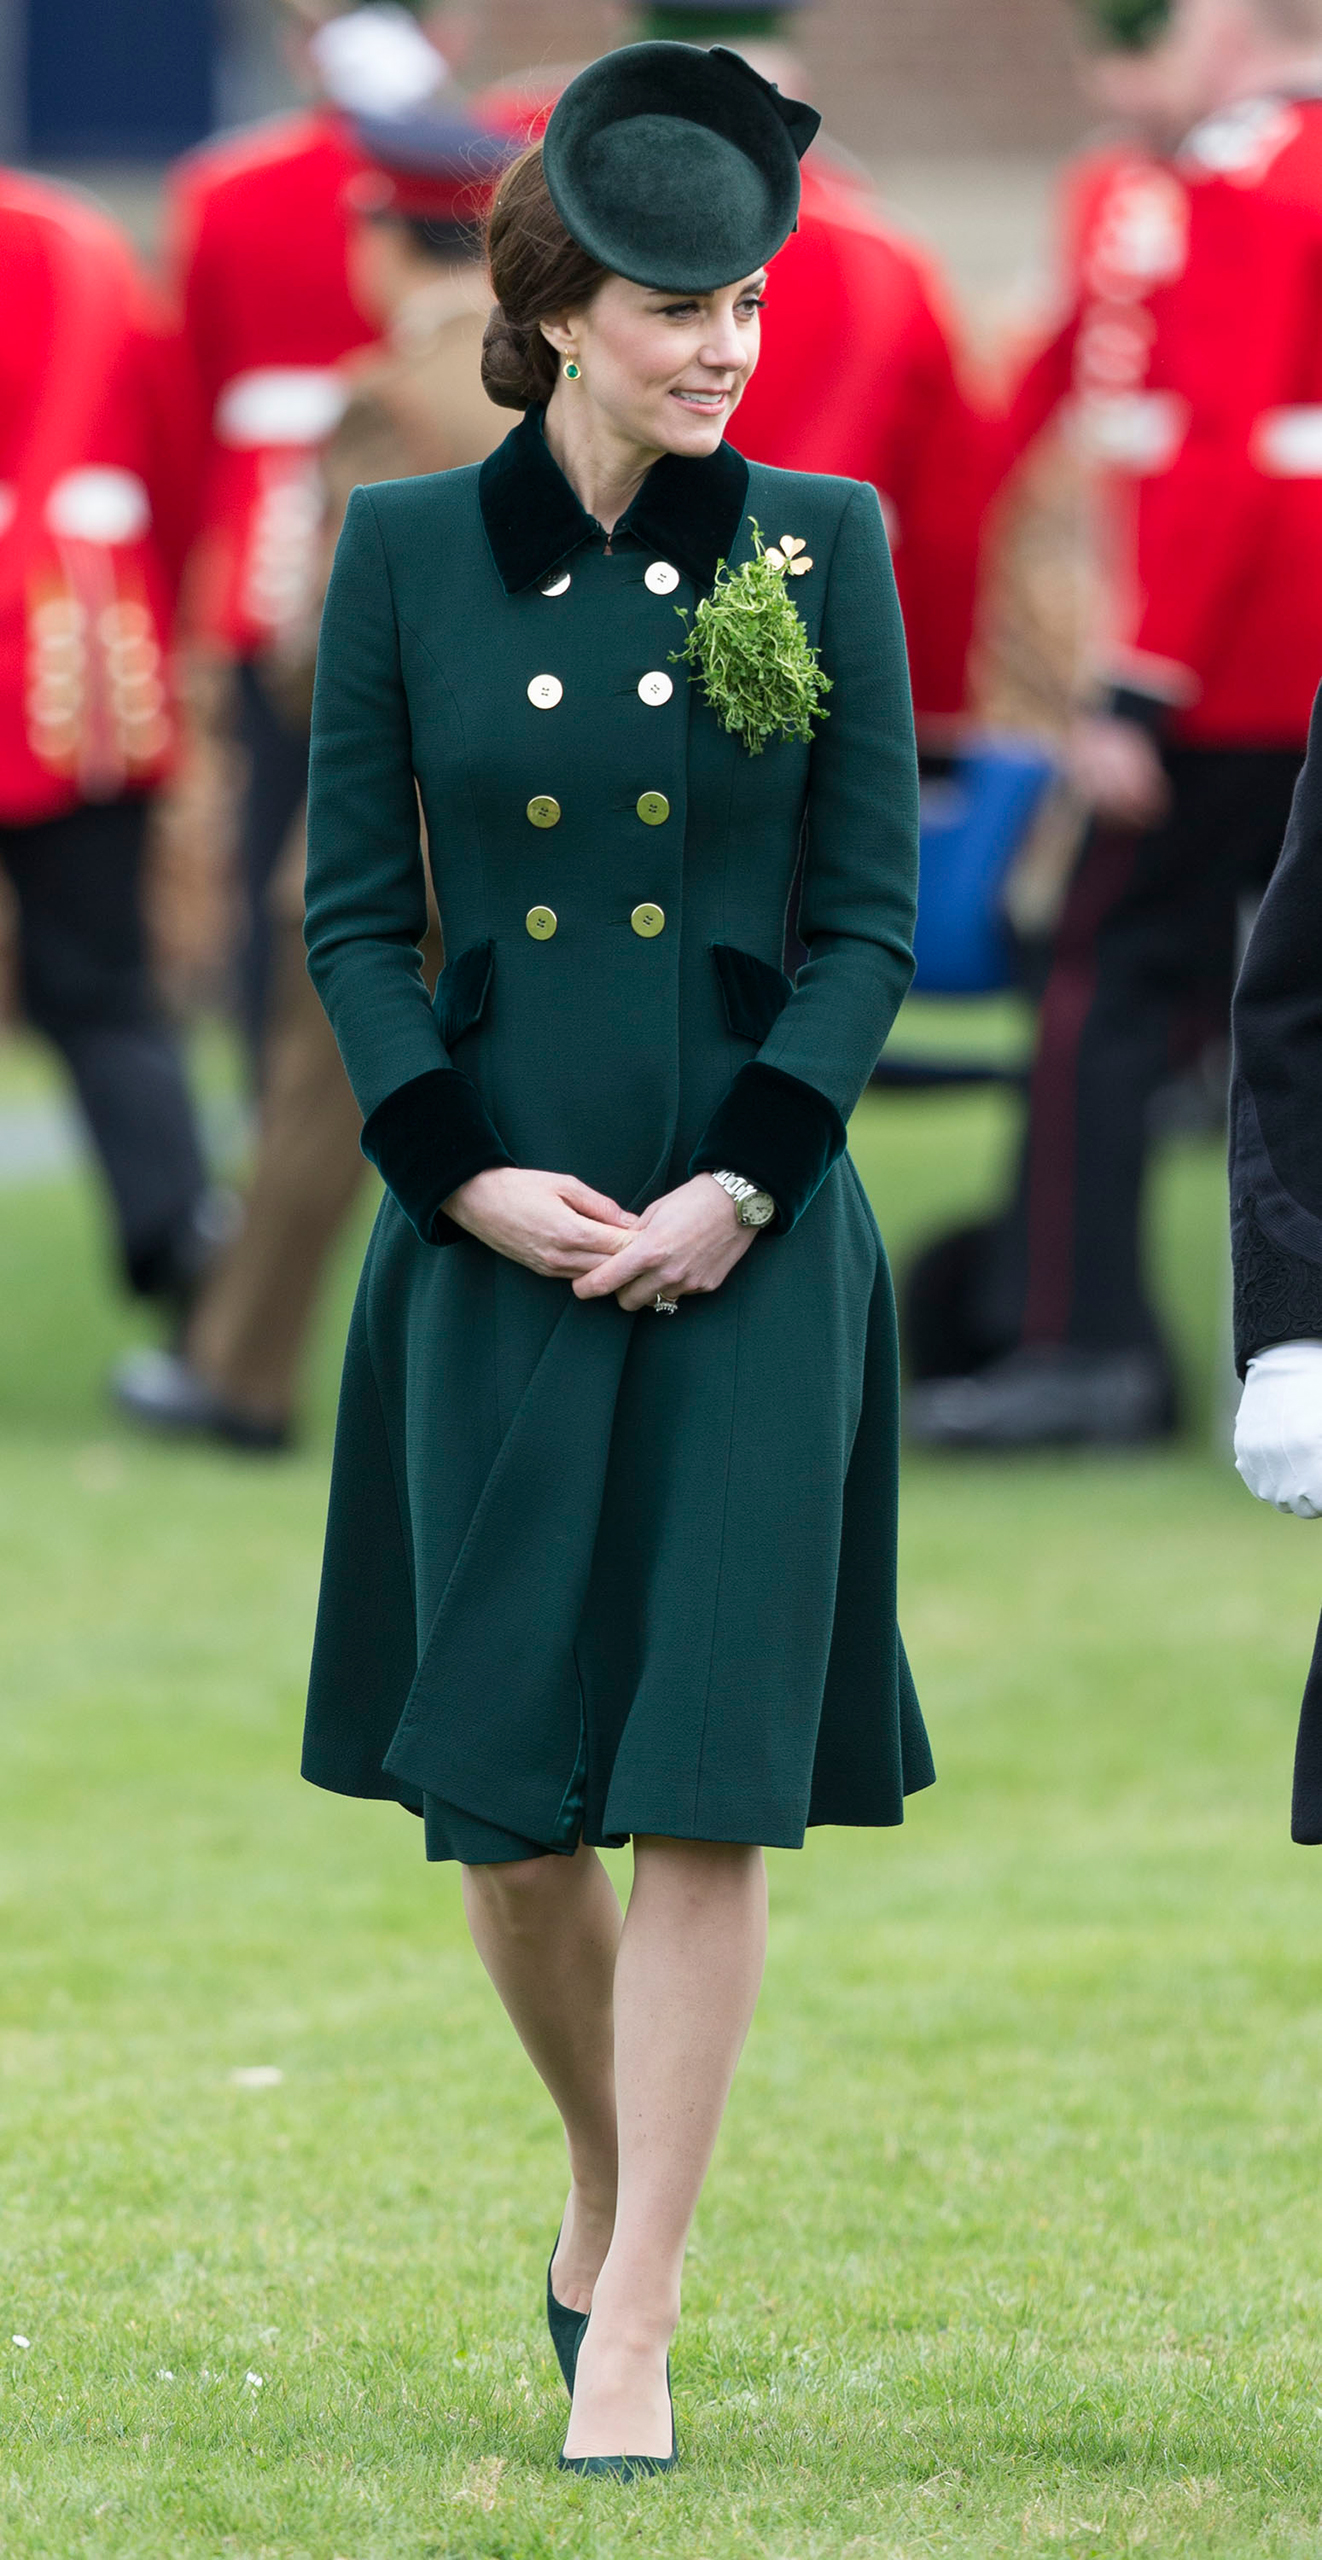 Catherine, Duchess of Cambridge, attends the annual Irish Guards St Patrick's Day Parade at Household Cavalry Barracks in London on March 17, 2017.